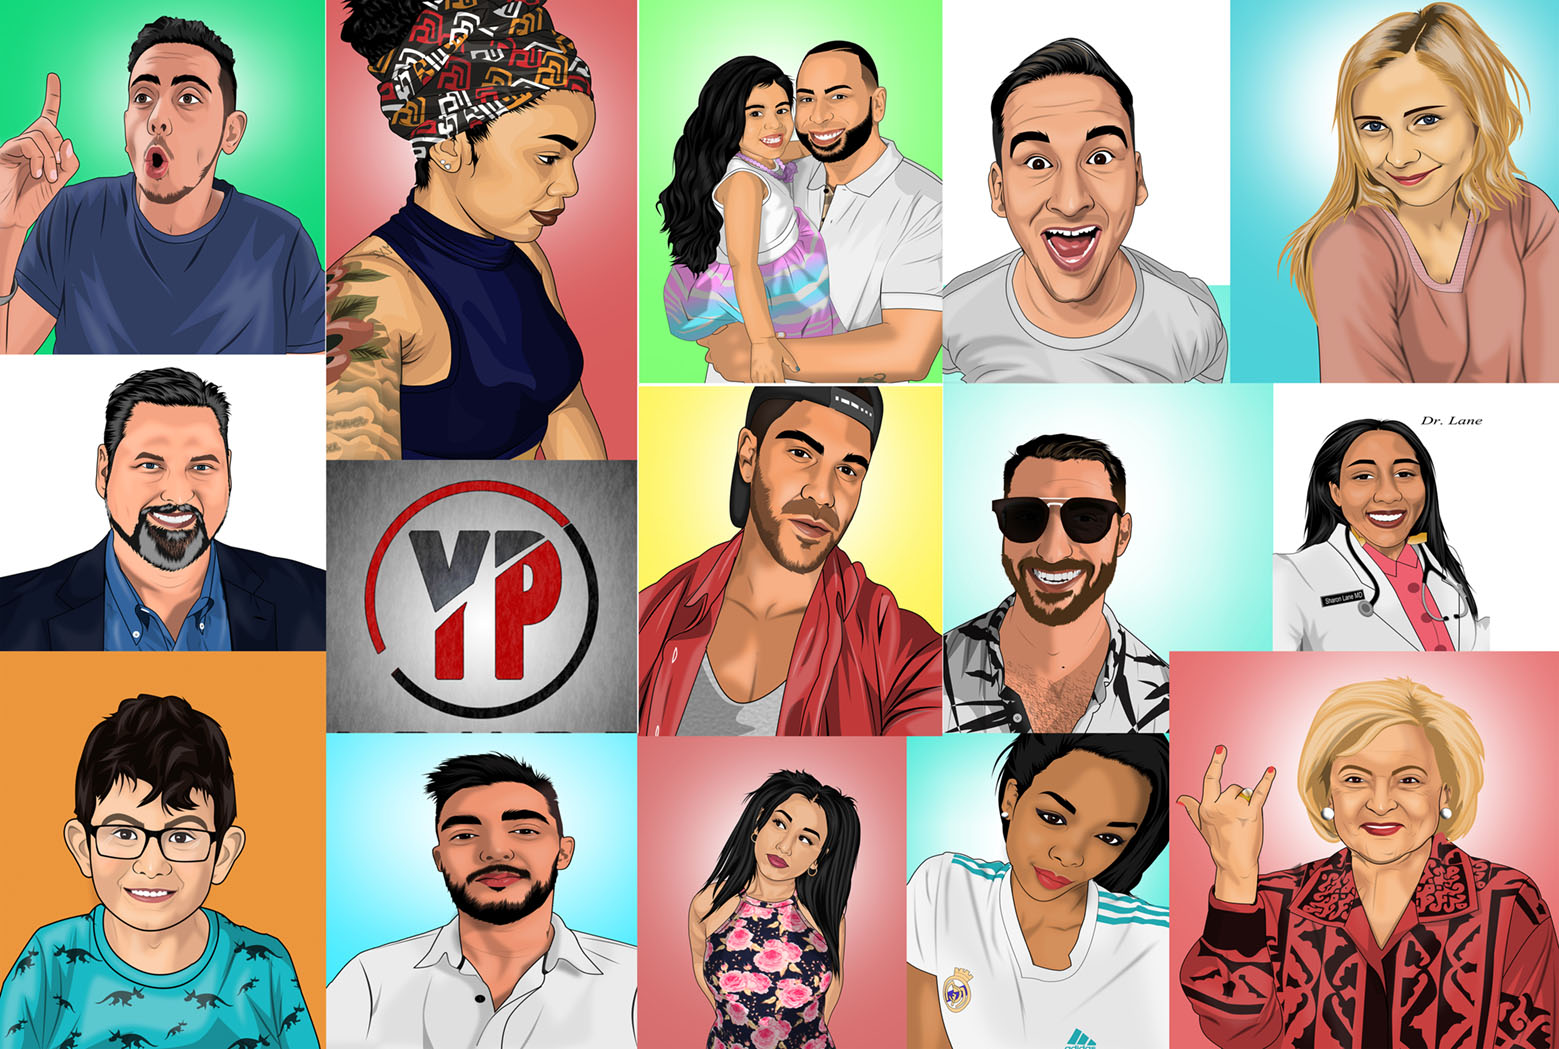 Make your picture into a cartoon portrait